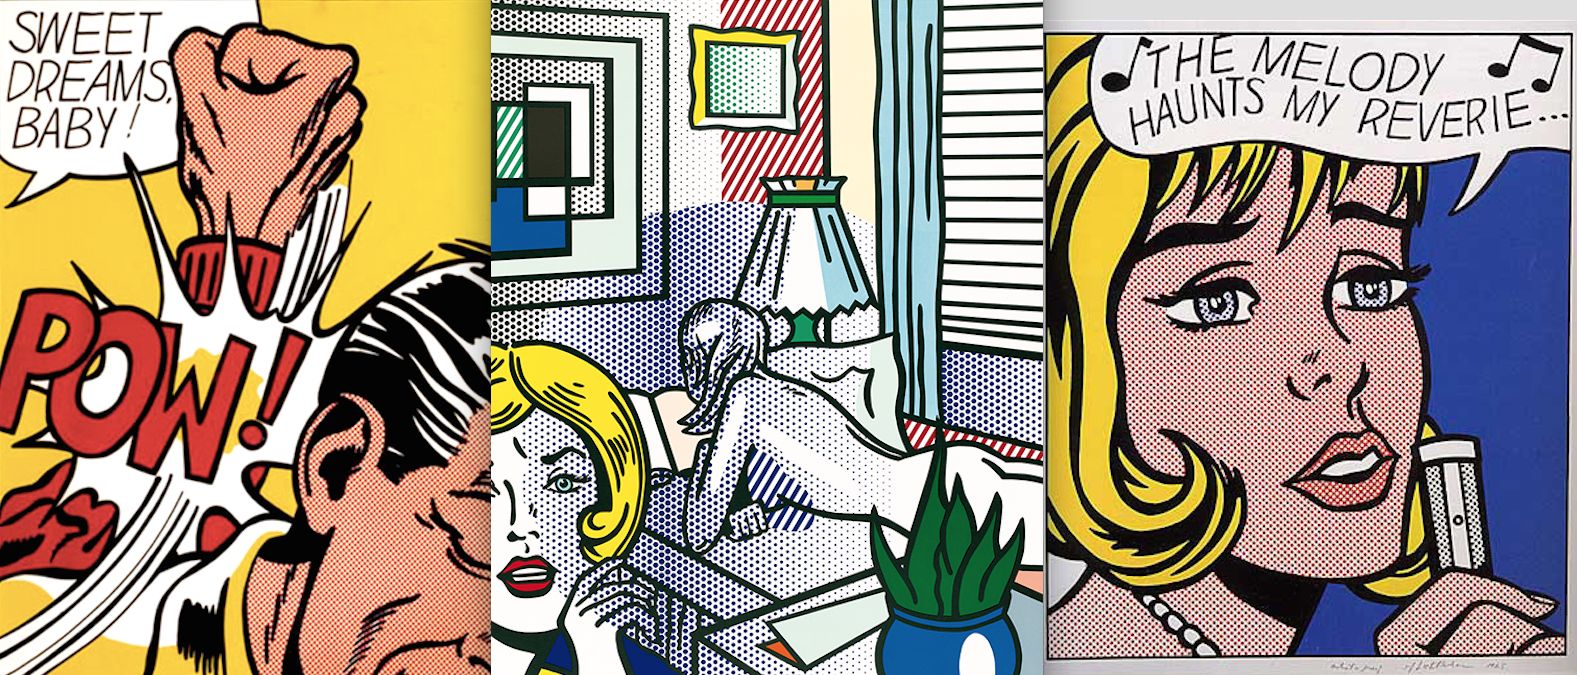 roy lichtenstein pop art essay An intensive development of pop art (popular art) essay on pop art claes oldenburg, roy lichtenstein andandy warhol.